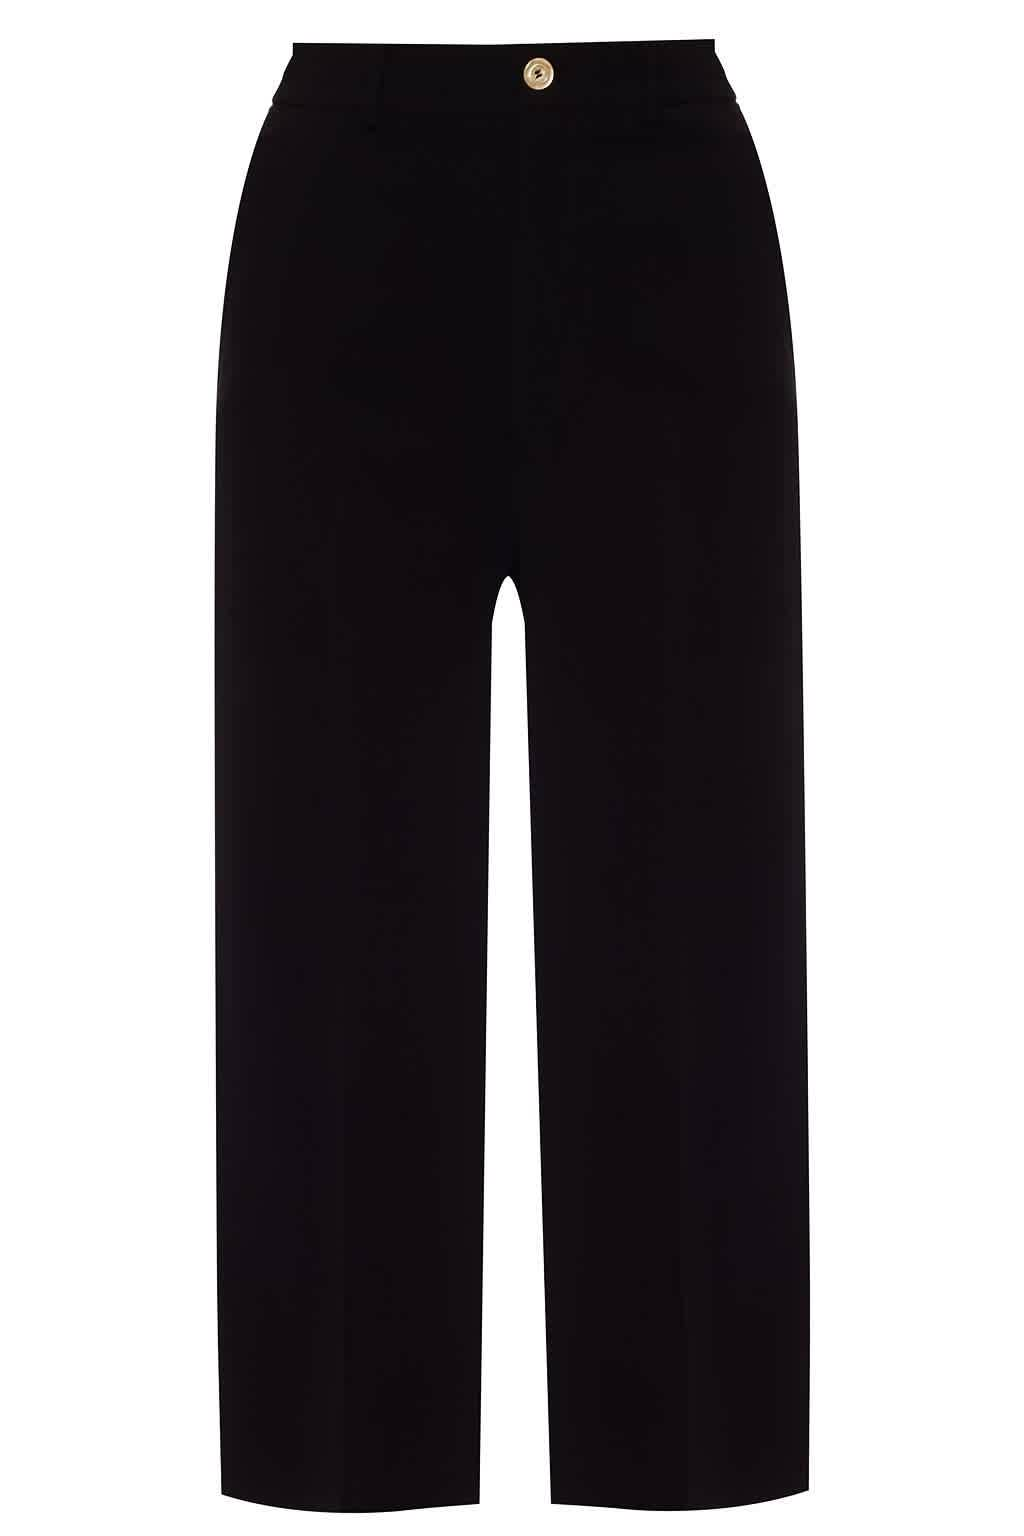 Gucci Viscose Culotte Pant With Web In Black,green,red